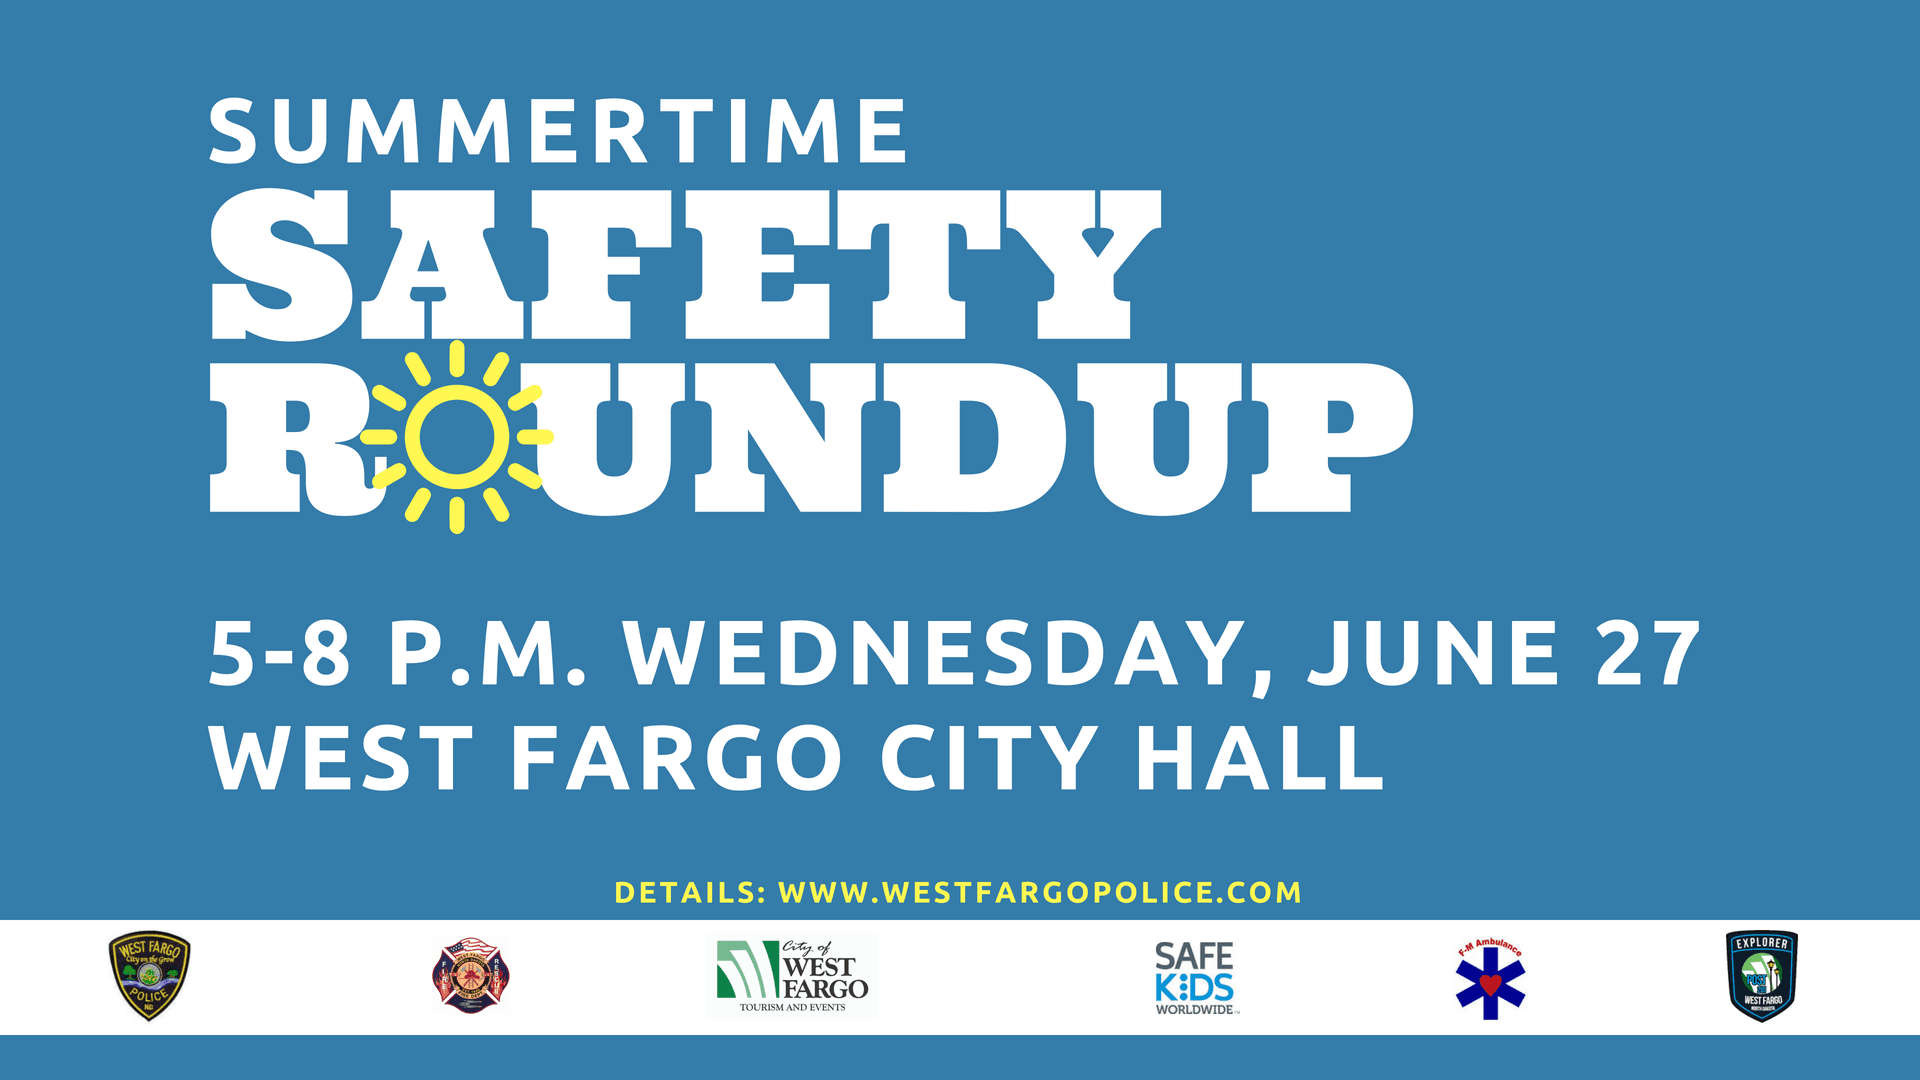 Summertime Safety Roundup